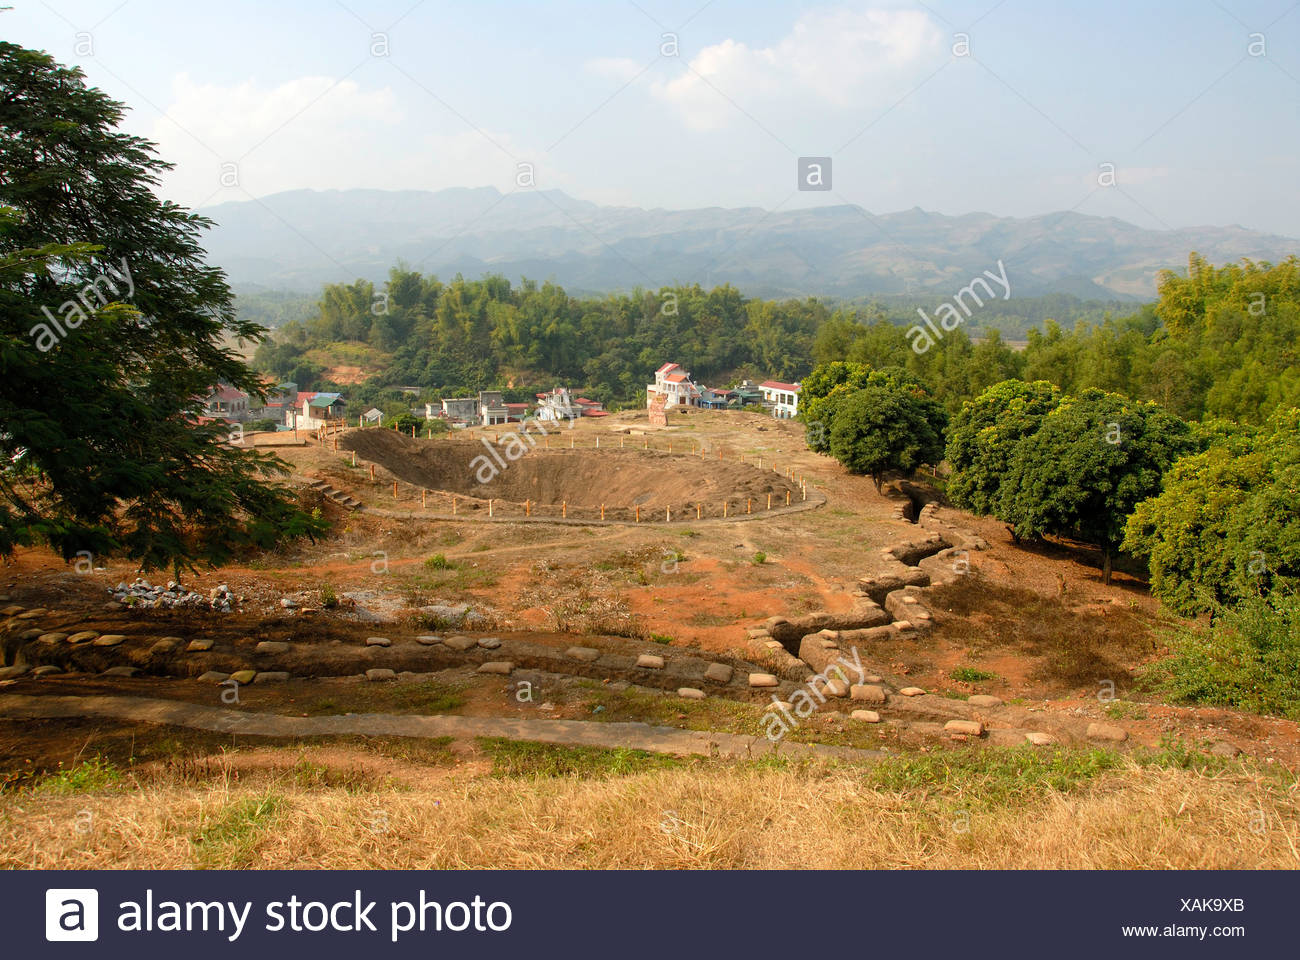 First Indochina war 1954, battlefield with trenches and a large bomb crater on the Mt A1, Dien Bien Phu, Vietnam, Southeast Asia - Stock Image